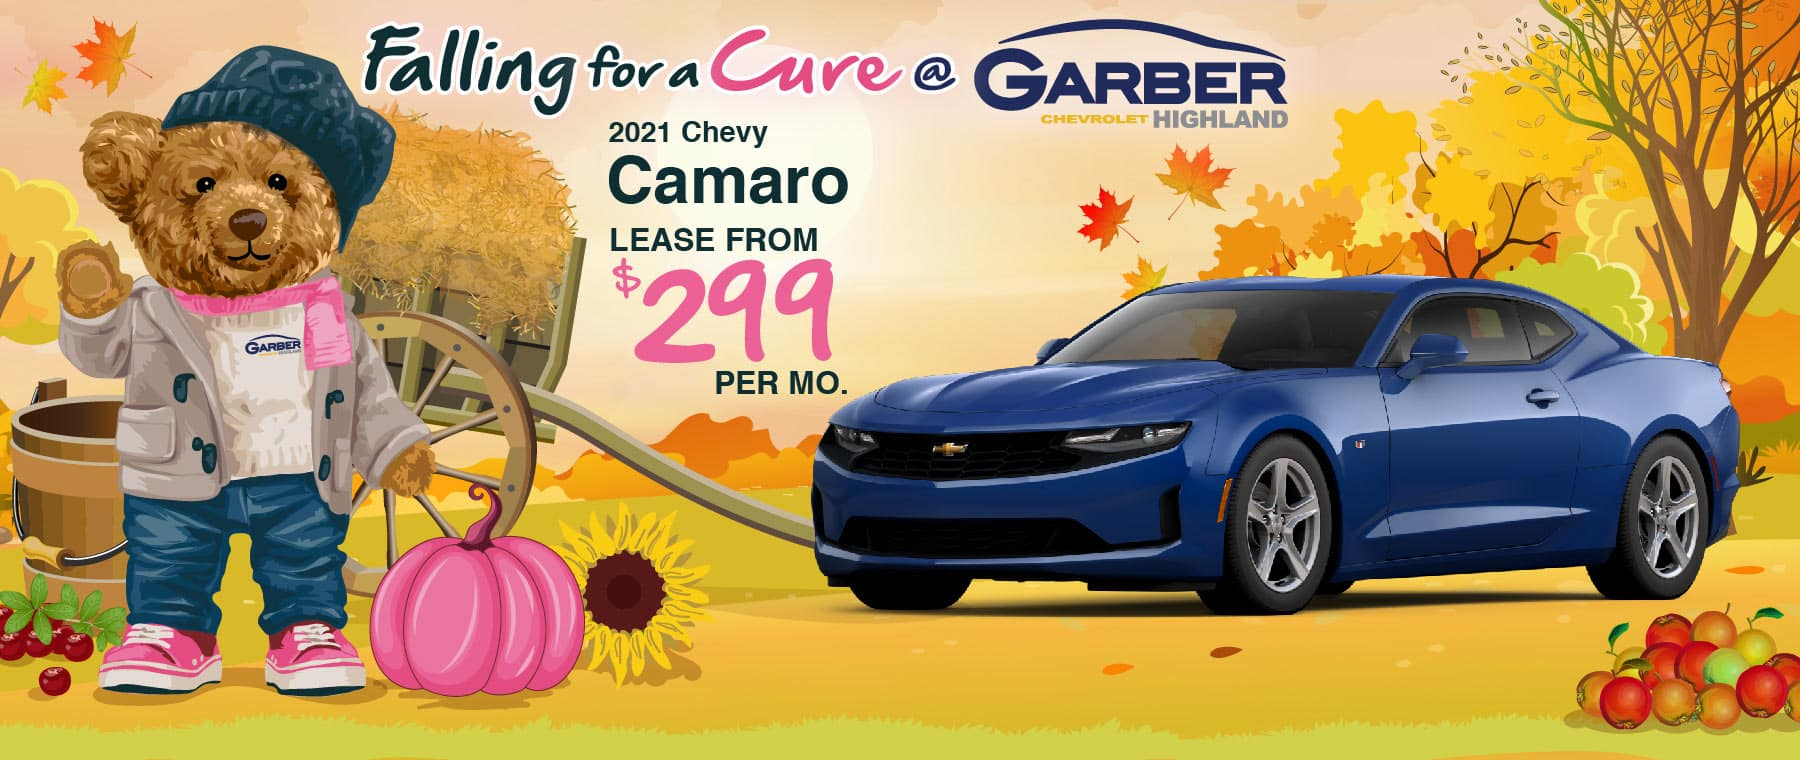 2021 Chevy Camaro - lease from $299 per month